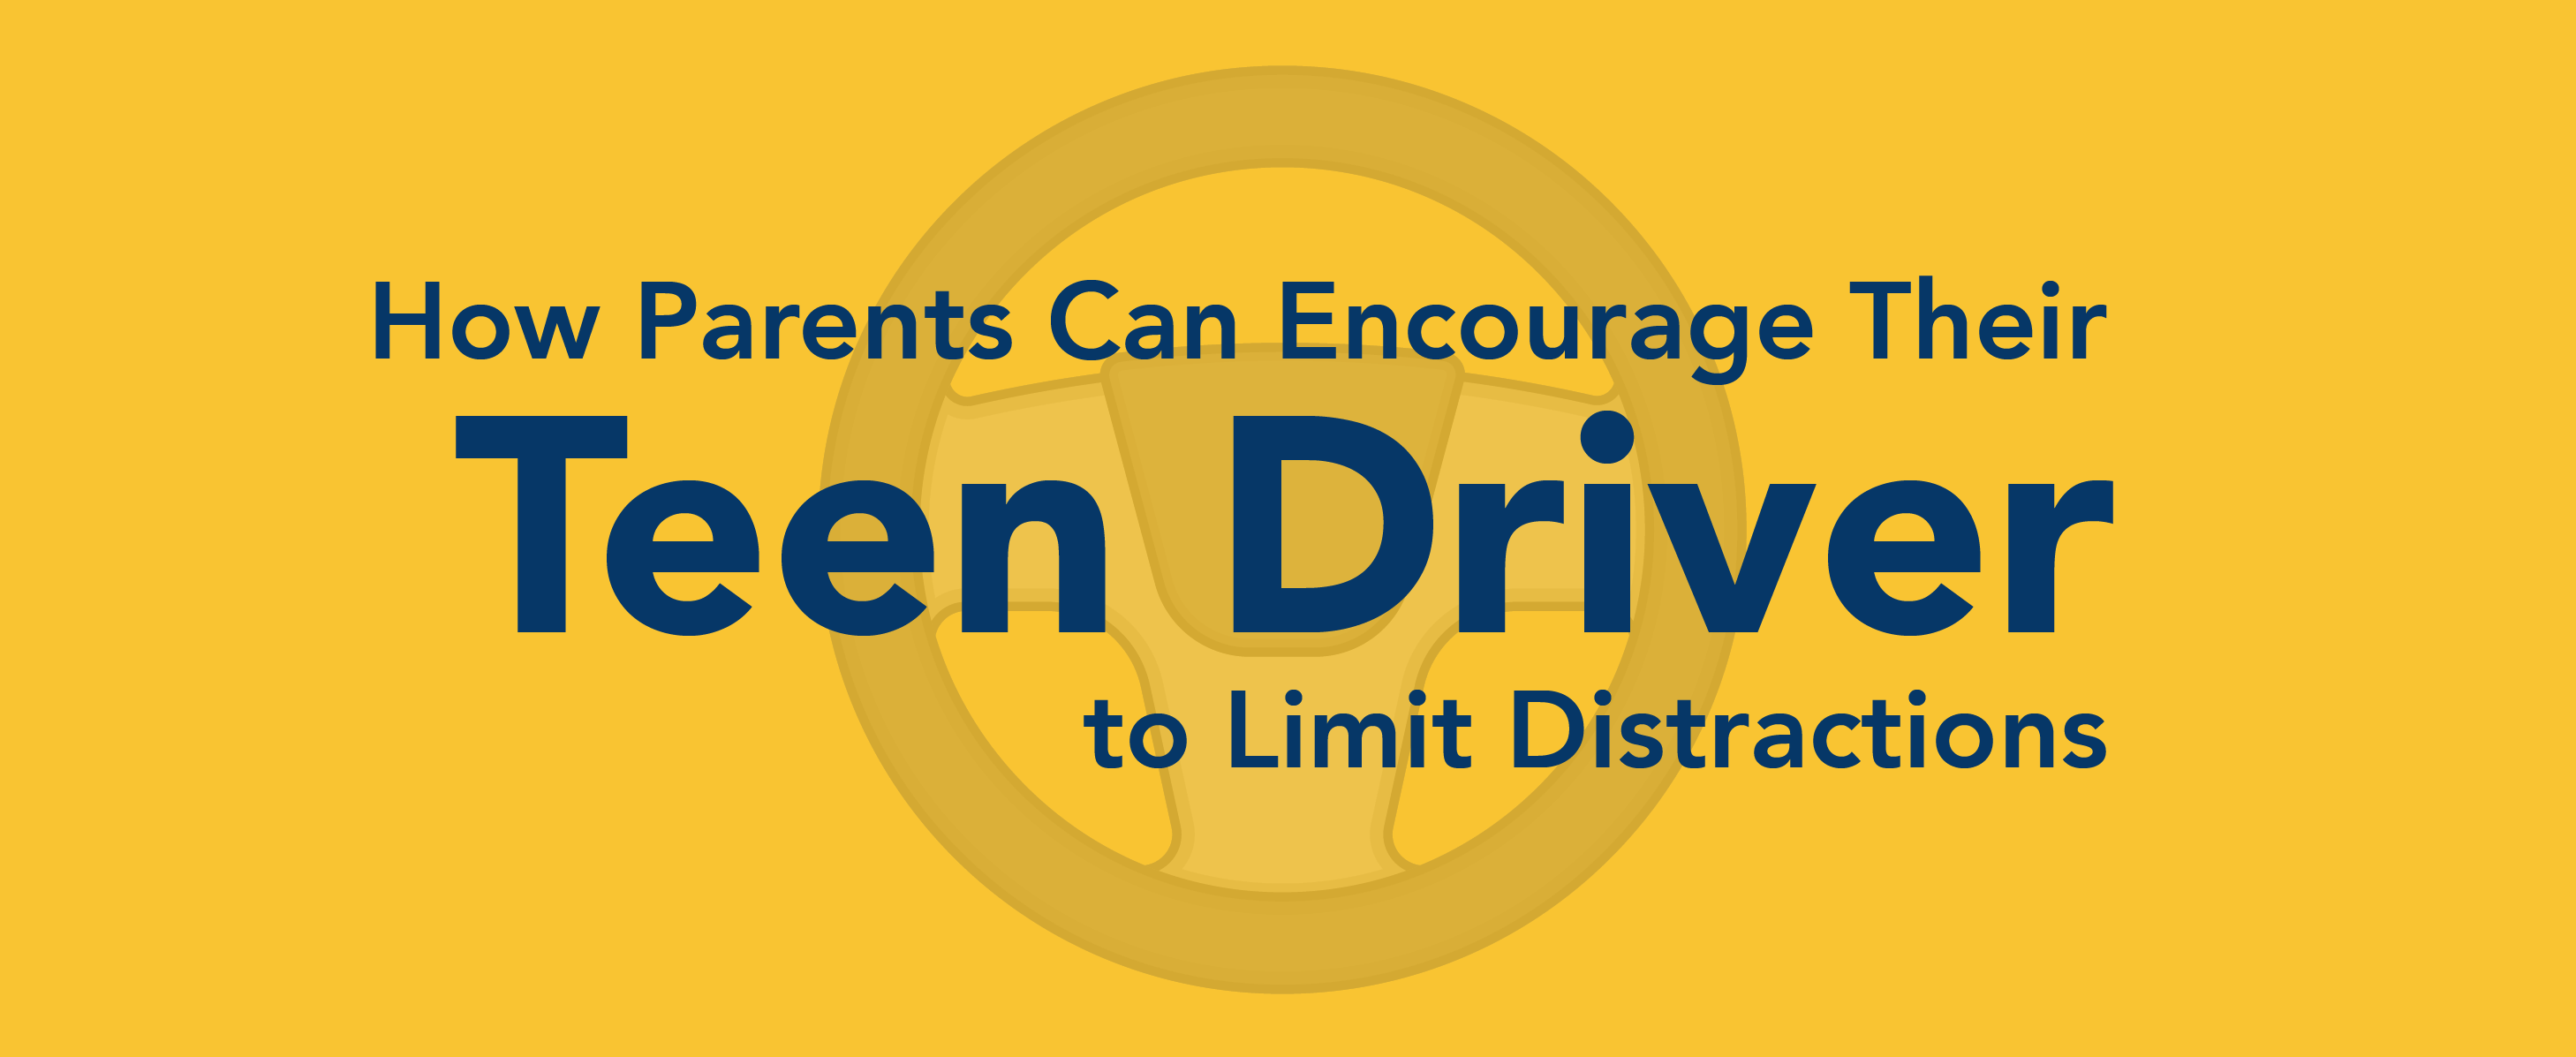 How parents can encourage their teen driver to limit distractions.